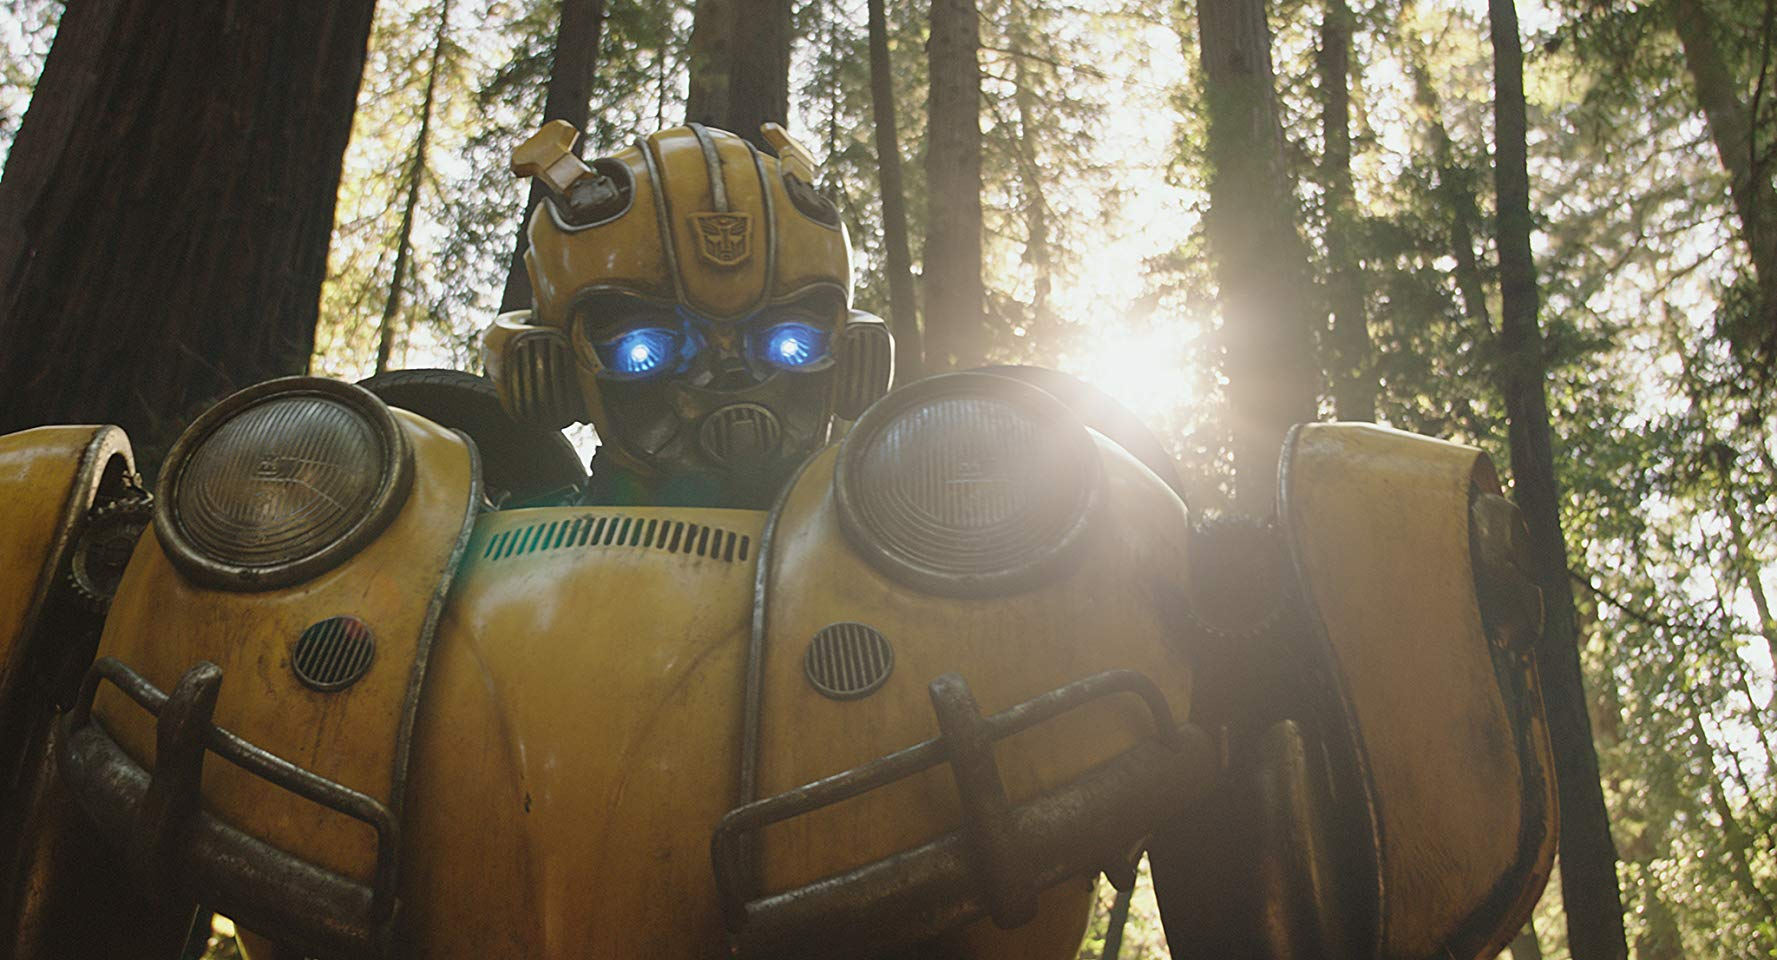 Bumblebee a hope for Transformers